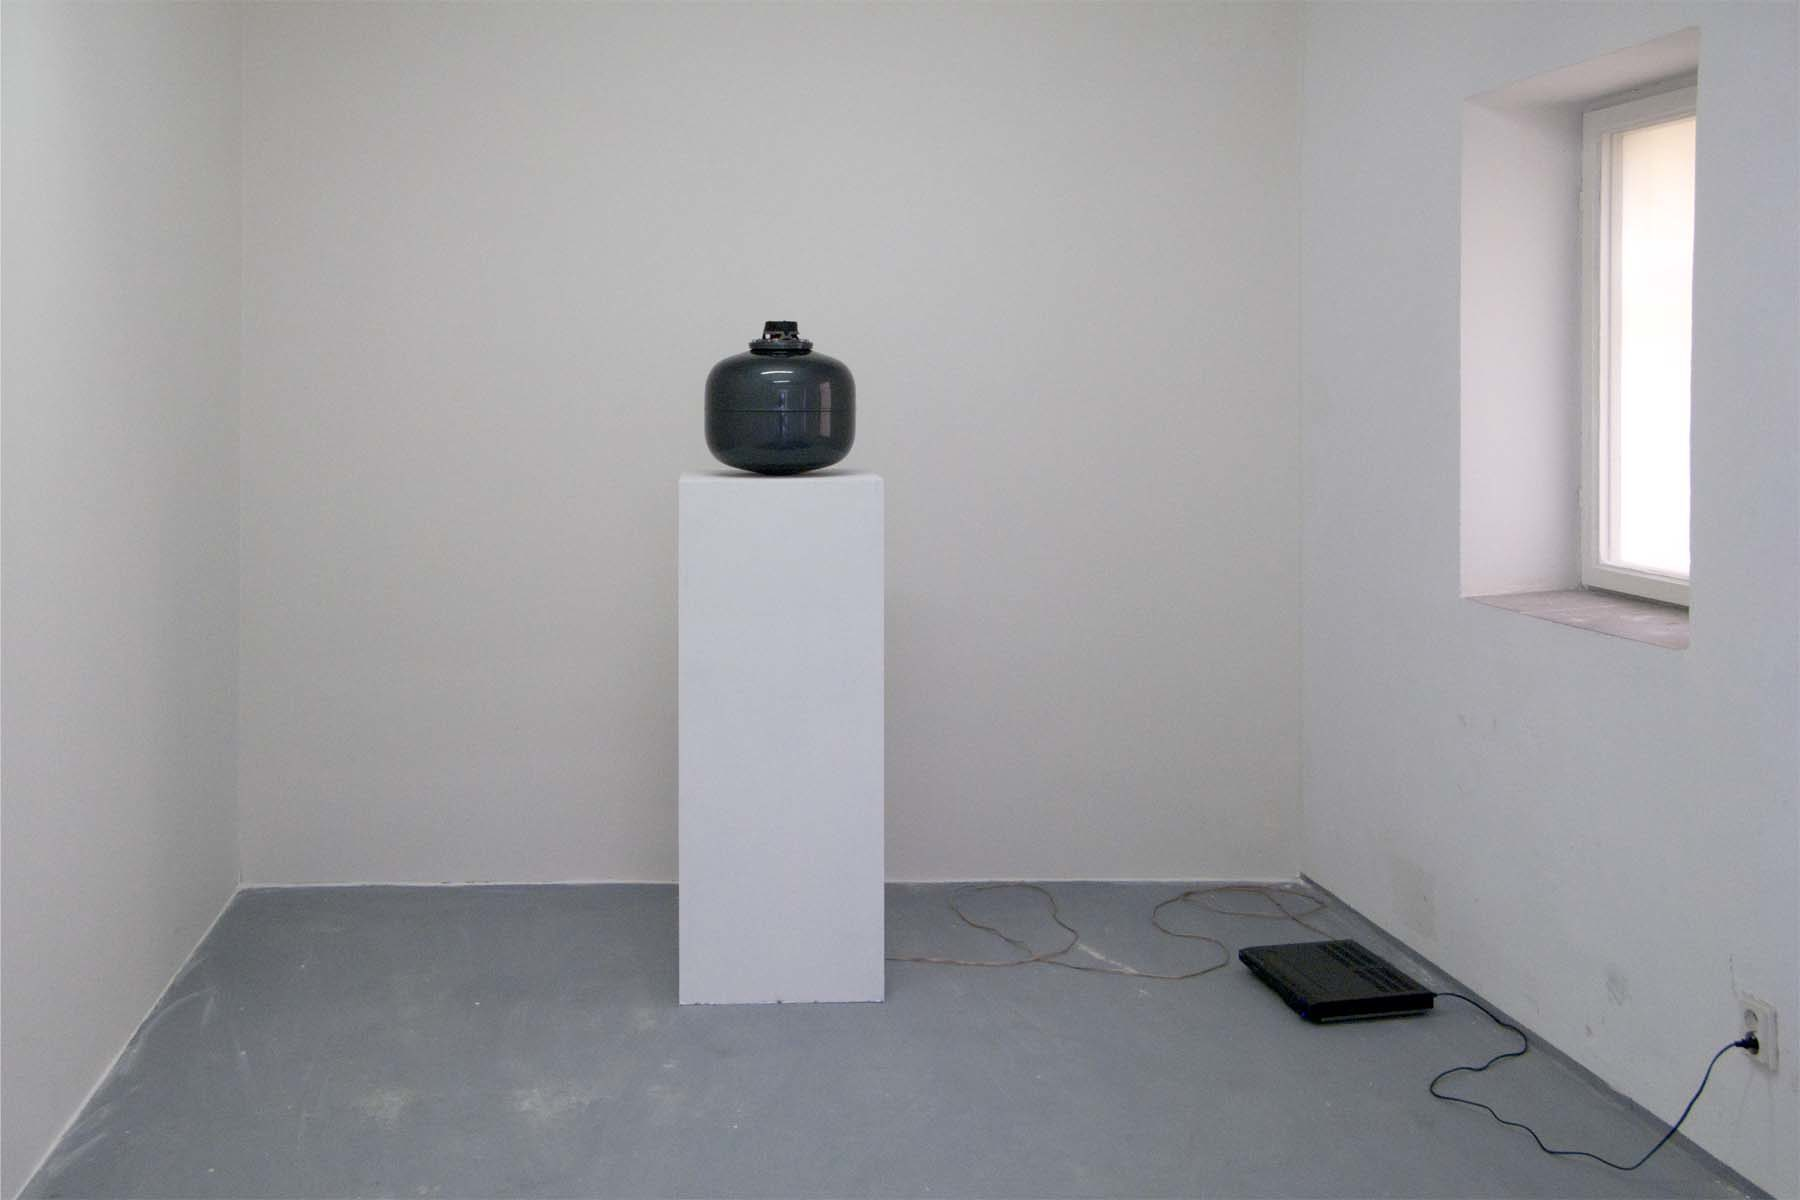 M. Spanghero, 1-10.000, 2010, metal tank, alluminium, speaker, cd player, 34 x 34 x 38 cm